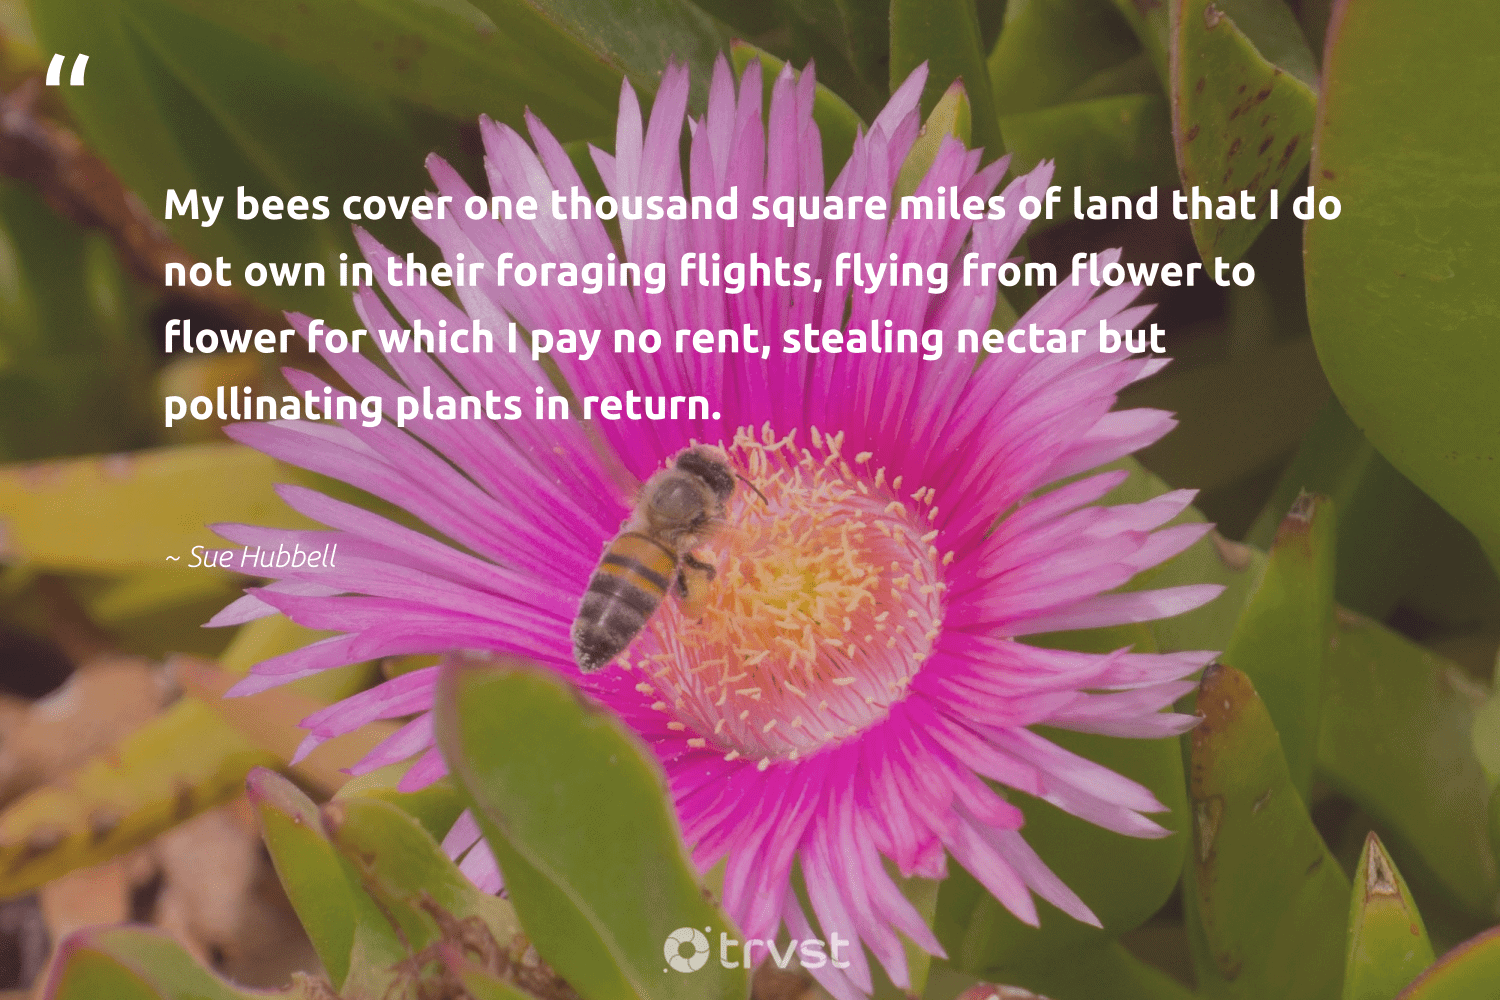 """""""My bees cover one thousand square miles of land that I do not own in their foraging flights, flying from flower to flower for which I pay no rent, stealing nectar but pollinating plants in return.""""  - Sue Hubbell #trvst #quotes #bees #honeybee #apiary #biology #planetearthfirst #beekeeping #beehive #nature #dotherightthing #honey"""